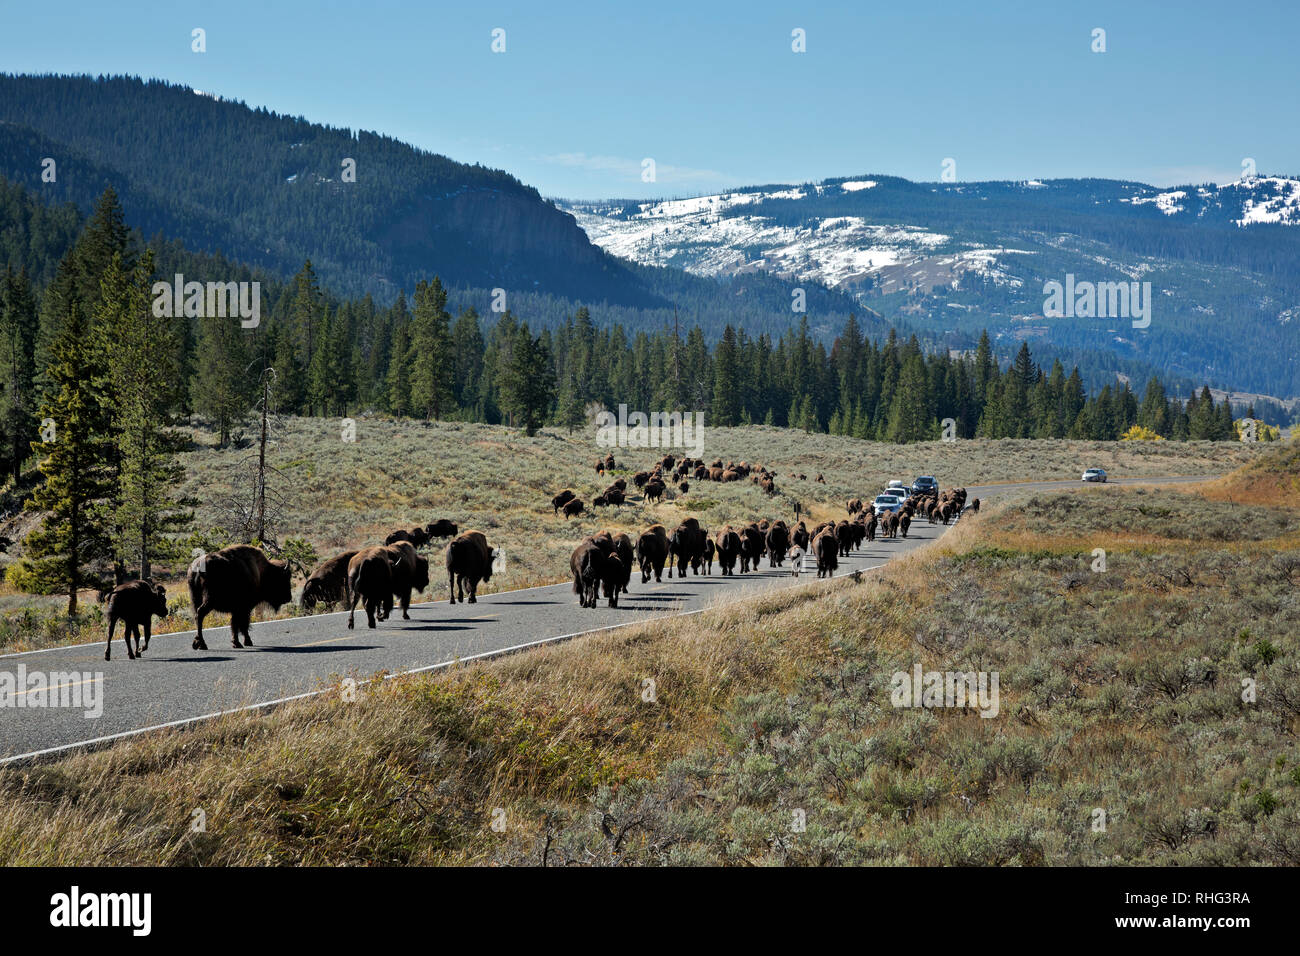 WY03097-00...WYOMING - A herd of buffalo using the Northeast Entrance Road to descend from the higher meadows into the Lamar Valley after an early sea - Stock Image